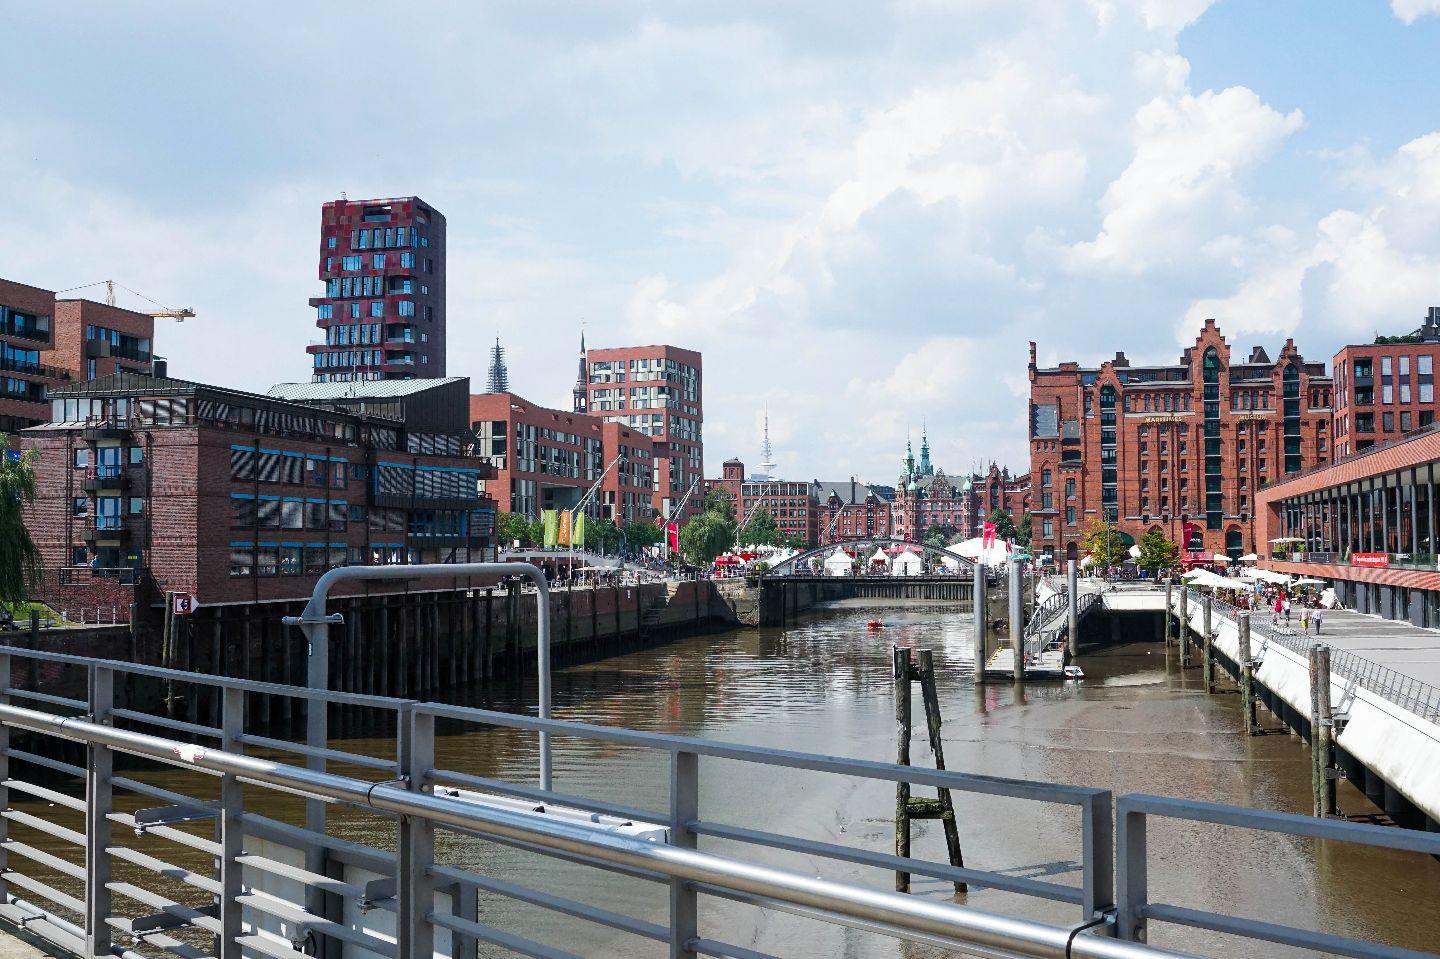 hamburg meine perle 25hours hotel hafencity. Black Bedroom Furniture Sets. Home Design Ideas